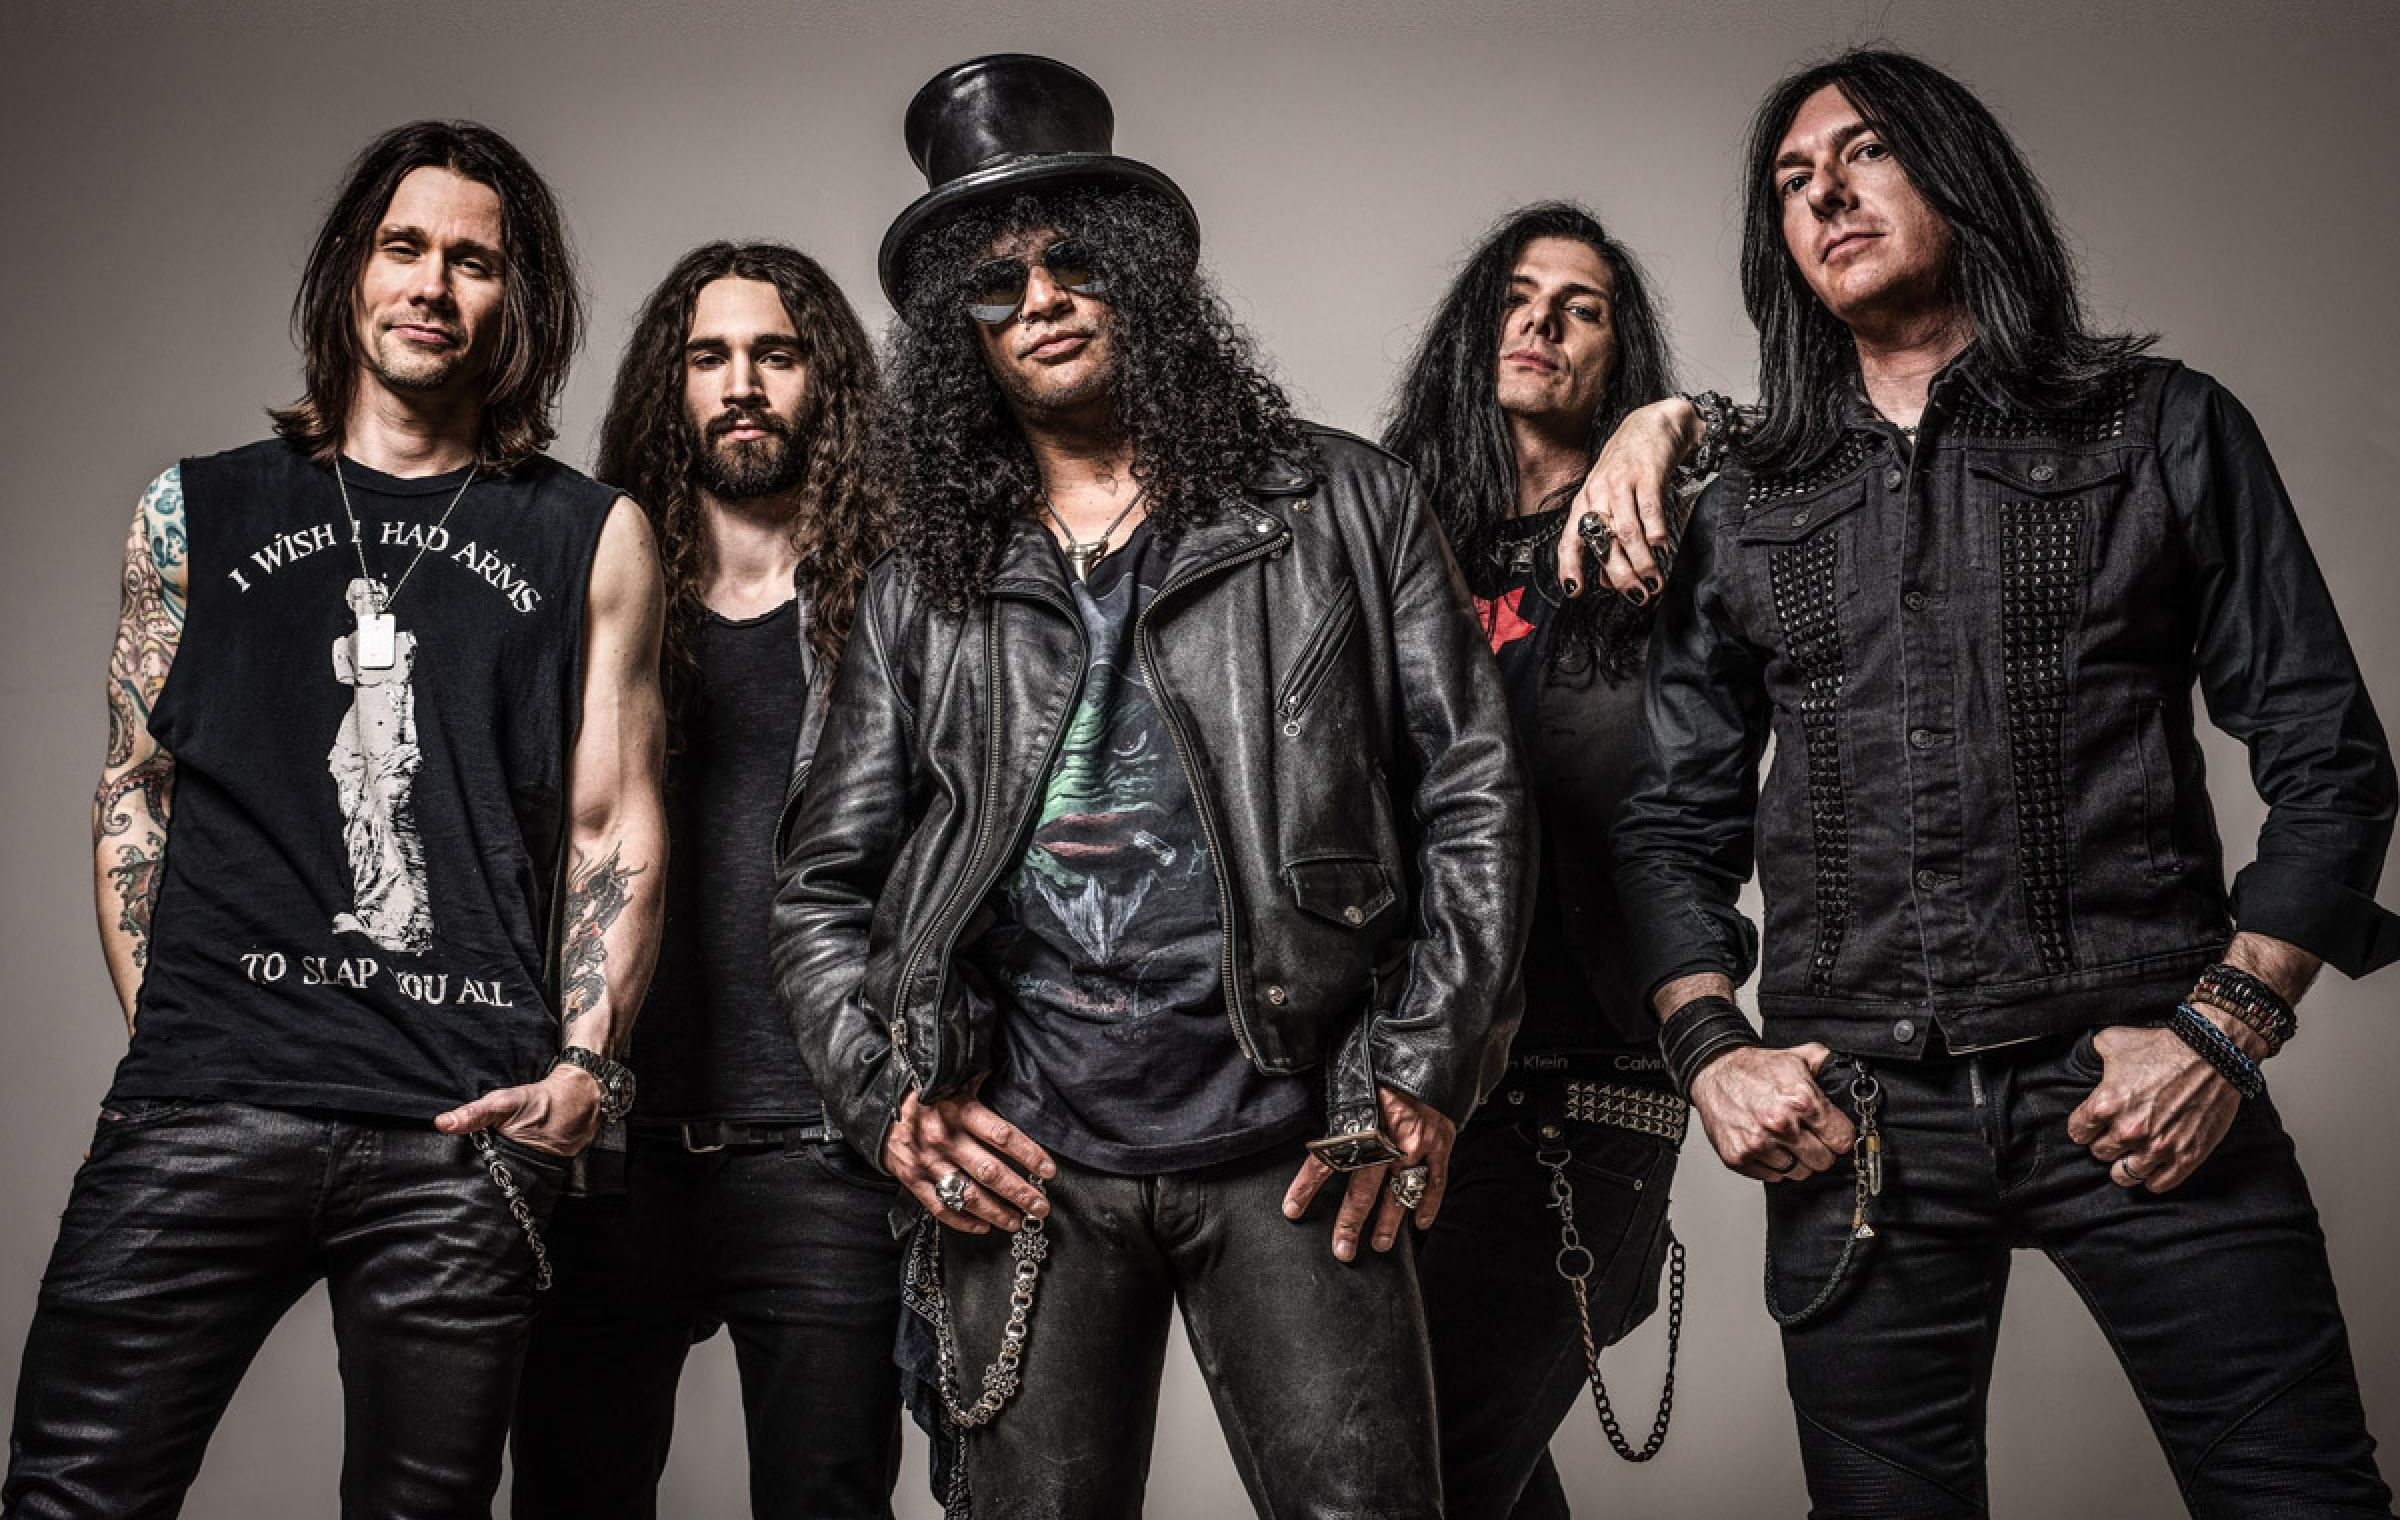 Guns N Roses Wallpapers Music Hq Guns N Roses Pictures: A Conversation With Slash About Music Streaming In A